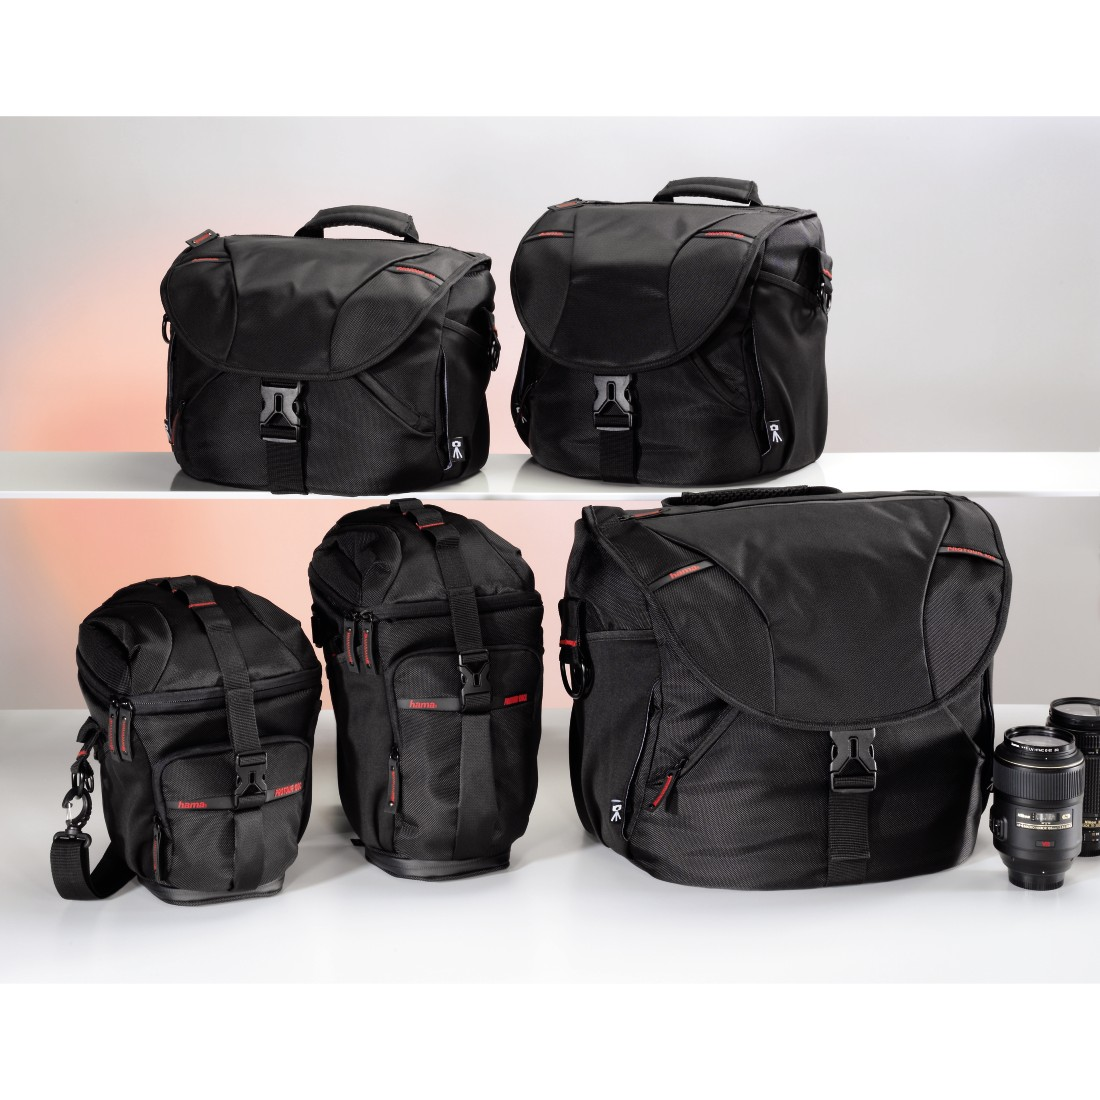 prx Druckfähiges Pressebild - Hama, Protour Camera Bag, 200, black